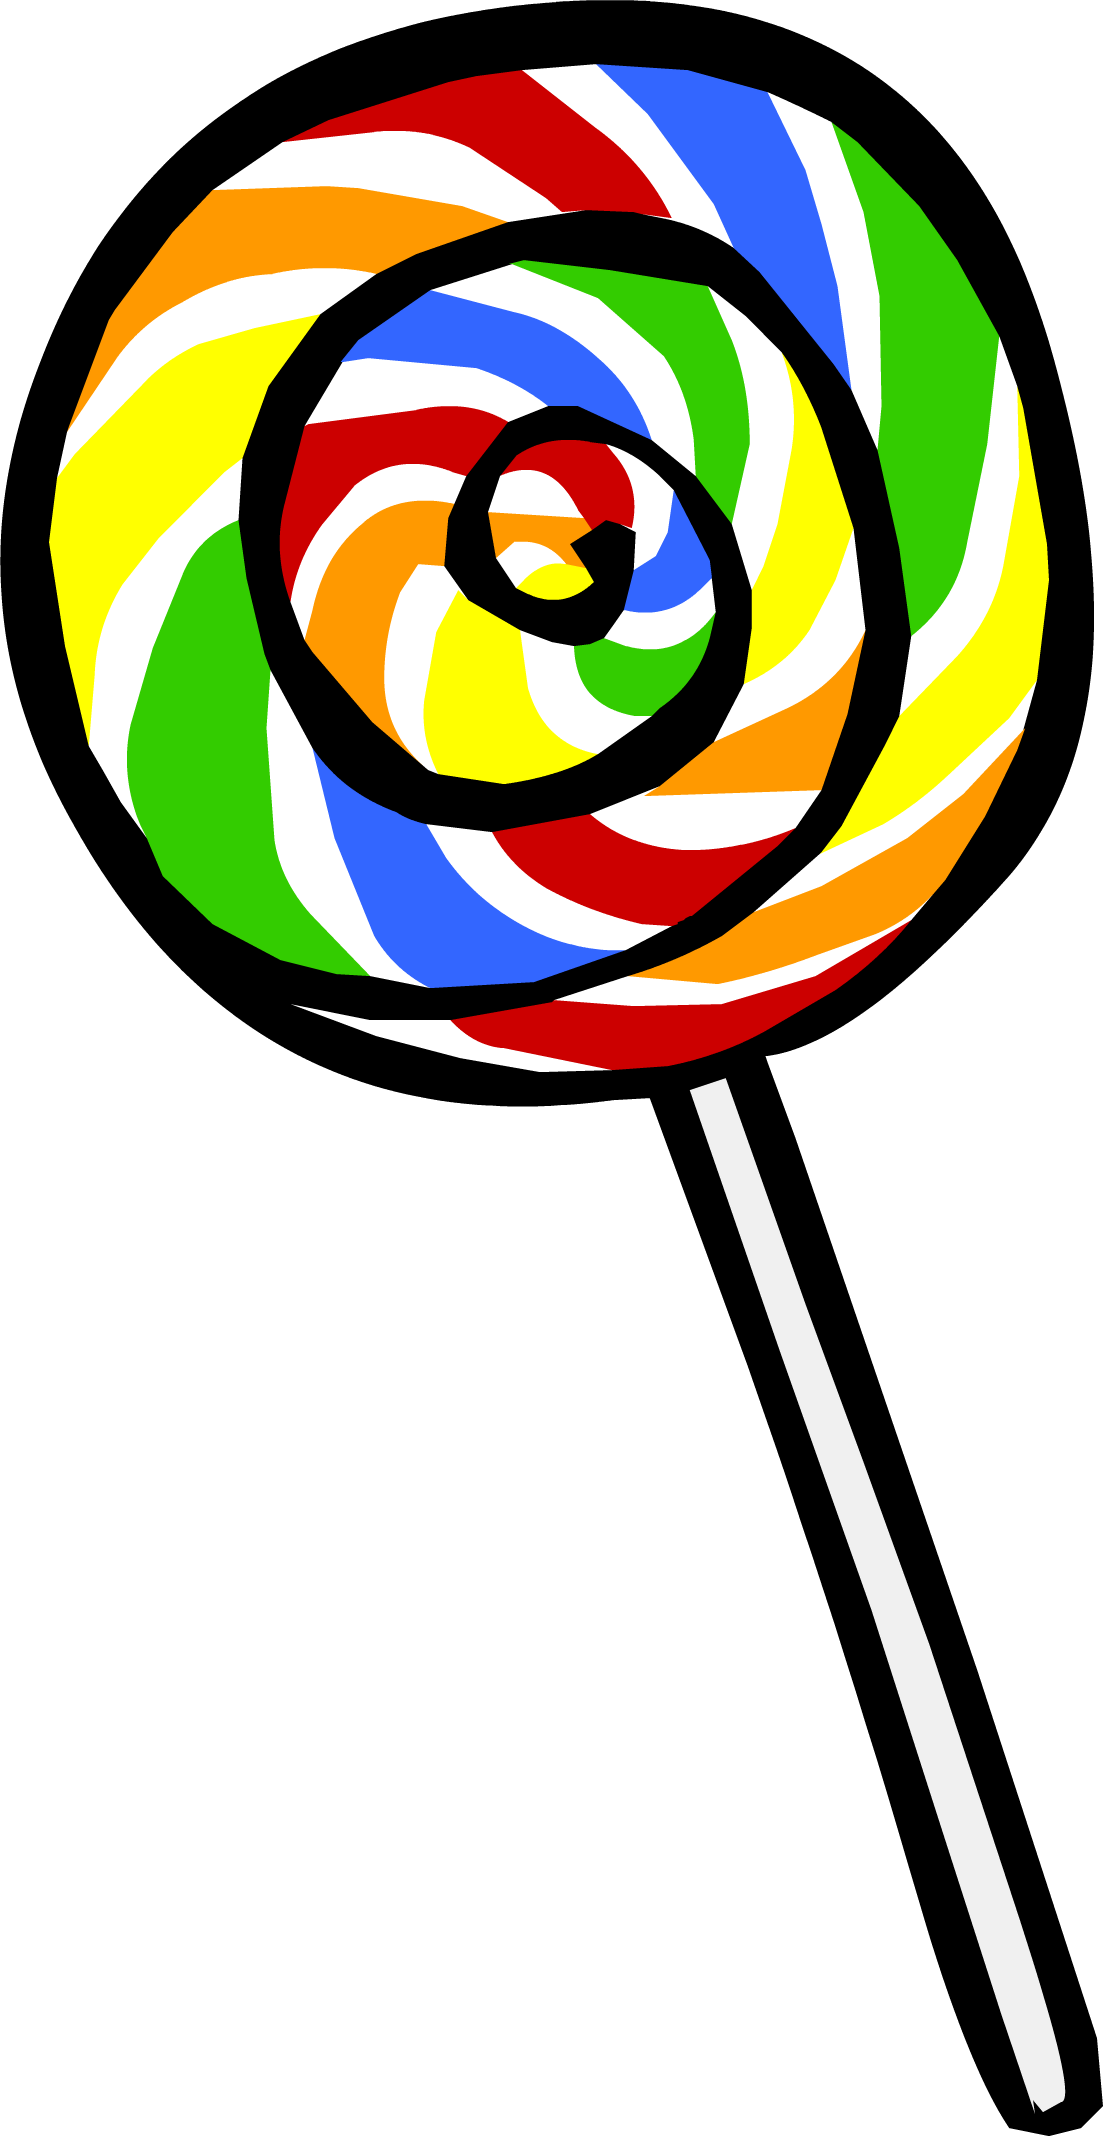 lollipop club penguin wiki fandom powered by wikia free beach clip art to copy and paste free beach clip art art